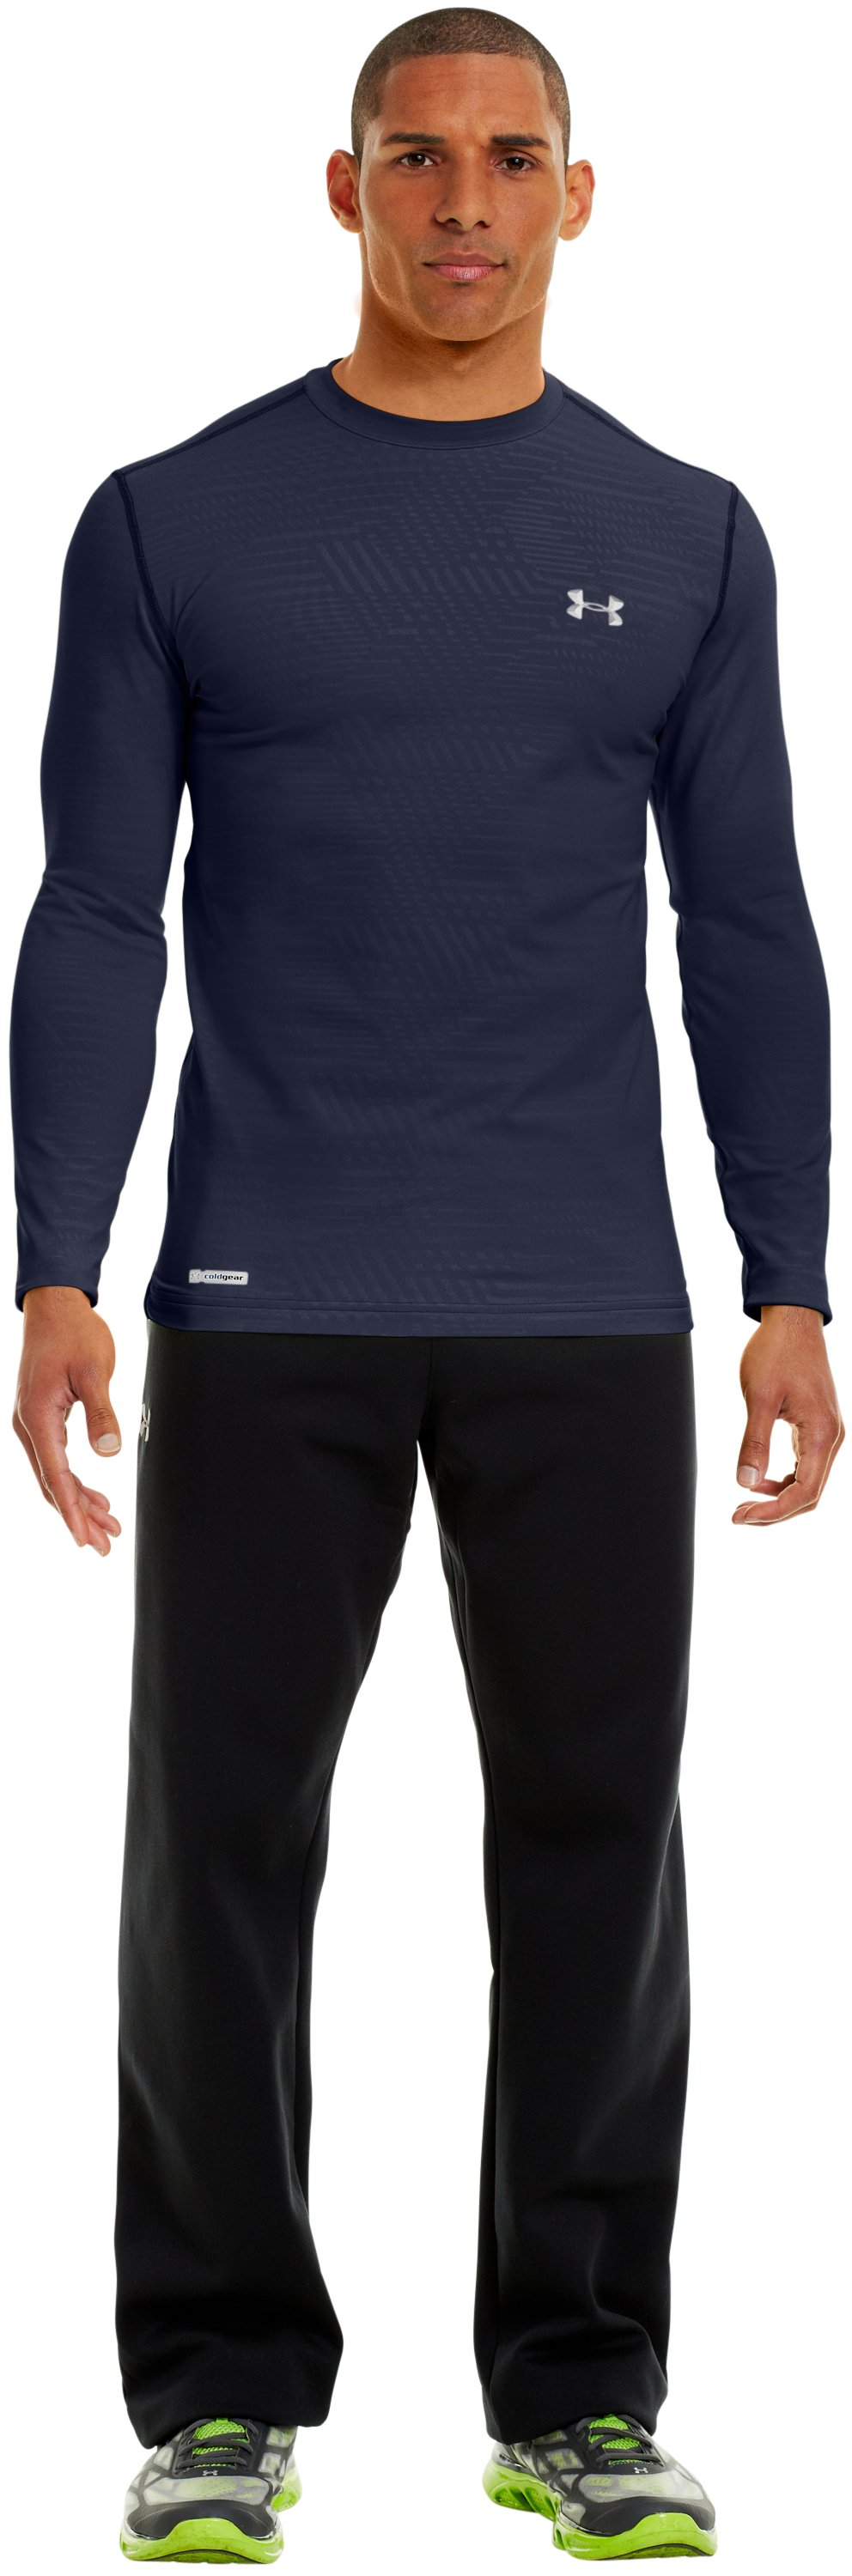 Men's ColdGear® Infrared Evo Printed Fitted Crew, Midnight Navy, zoomed image